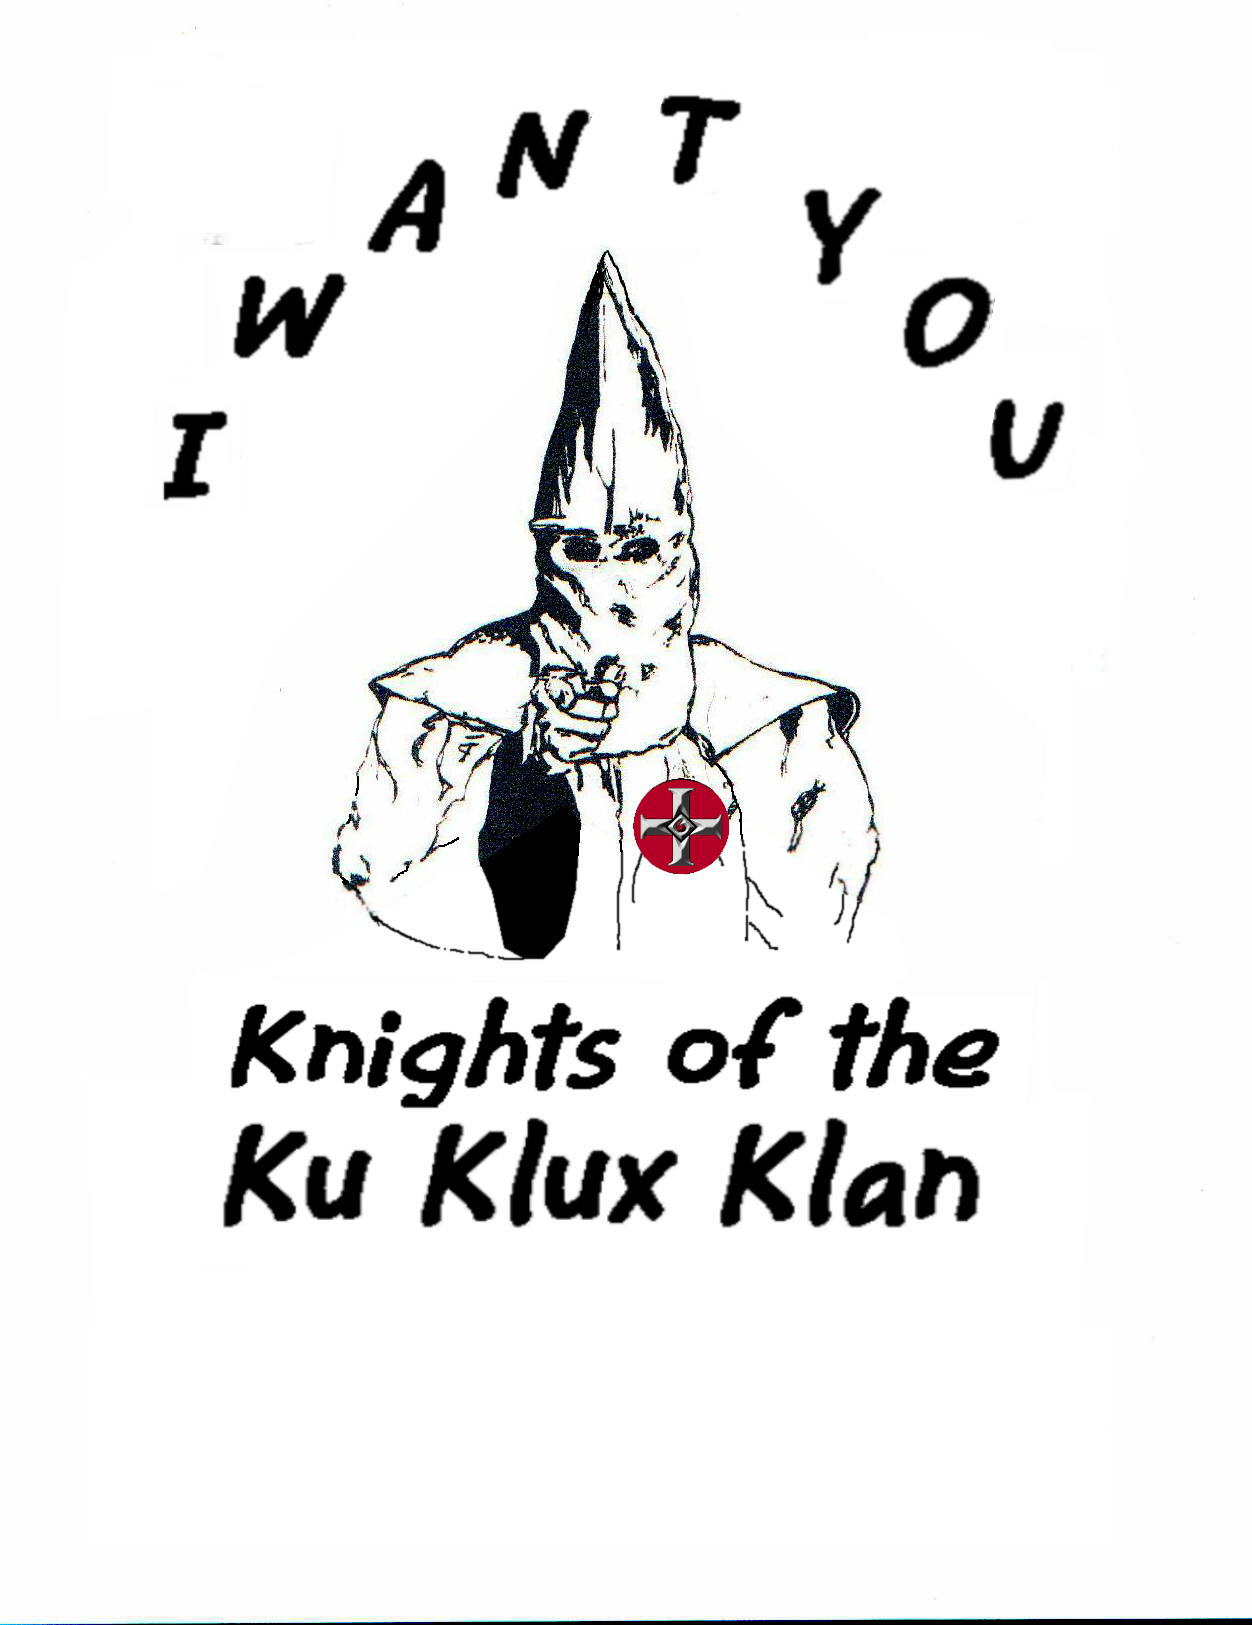 I want you! Knights of The KKK – Tshirt – American Heritage Store